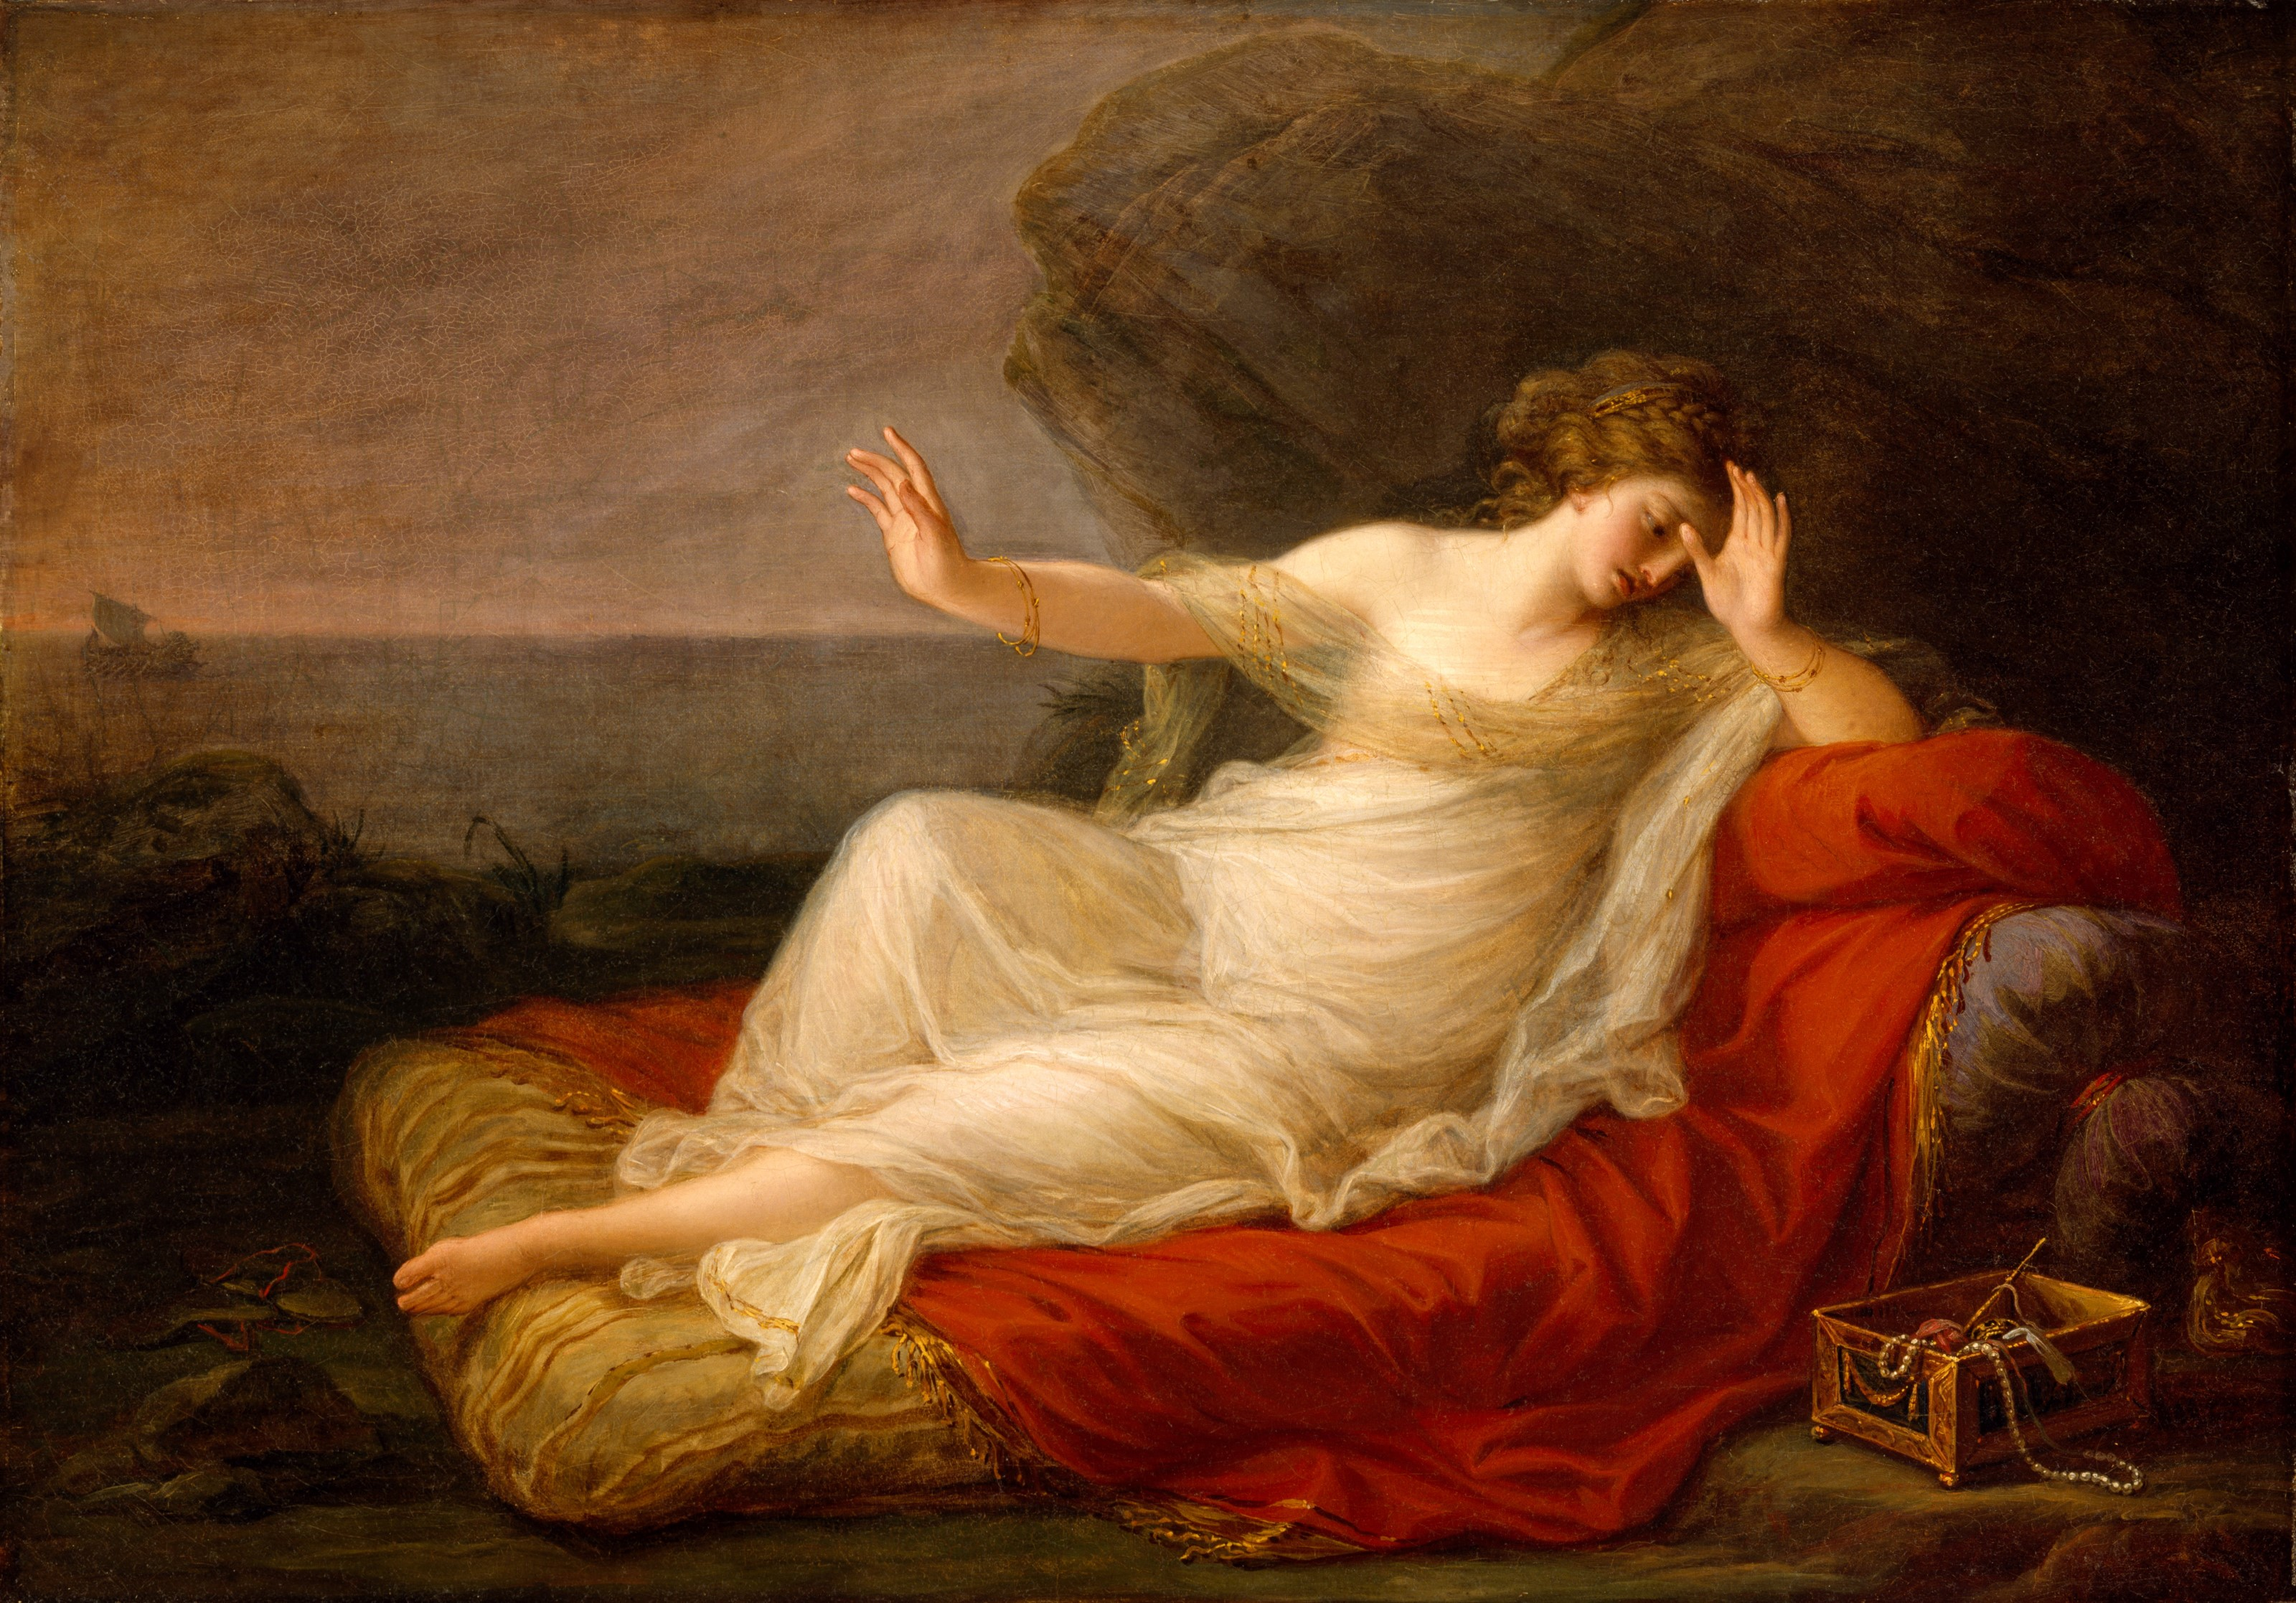 Angelica_Kauffmann%2C_Ariadne_Abandoned_by_Theseus%2C_1774.jpg?uselang=fr